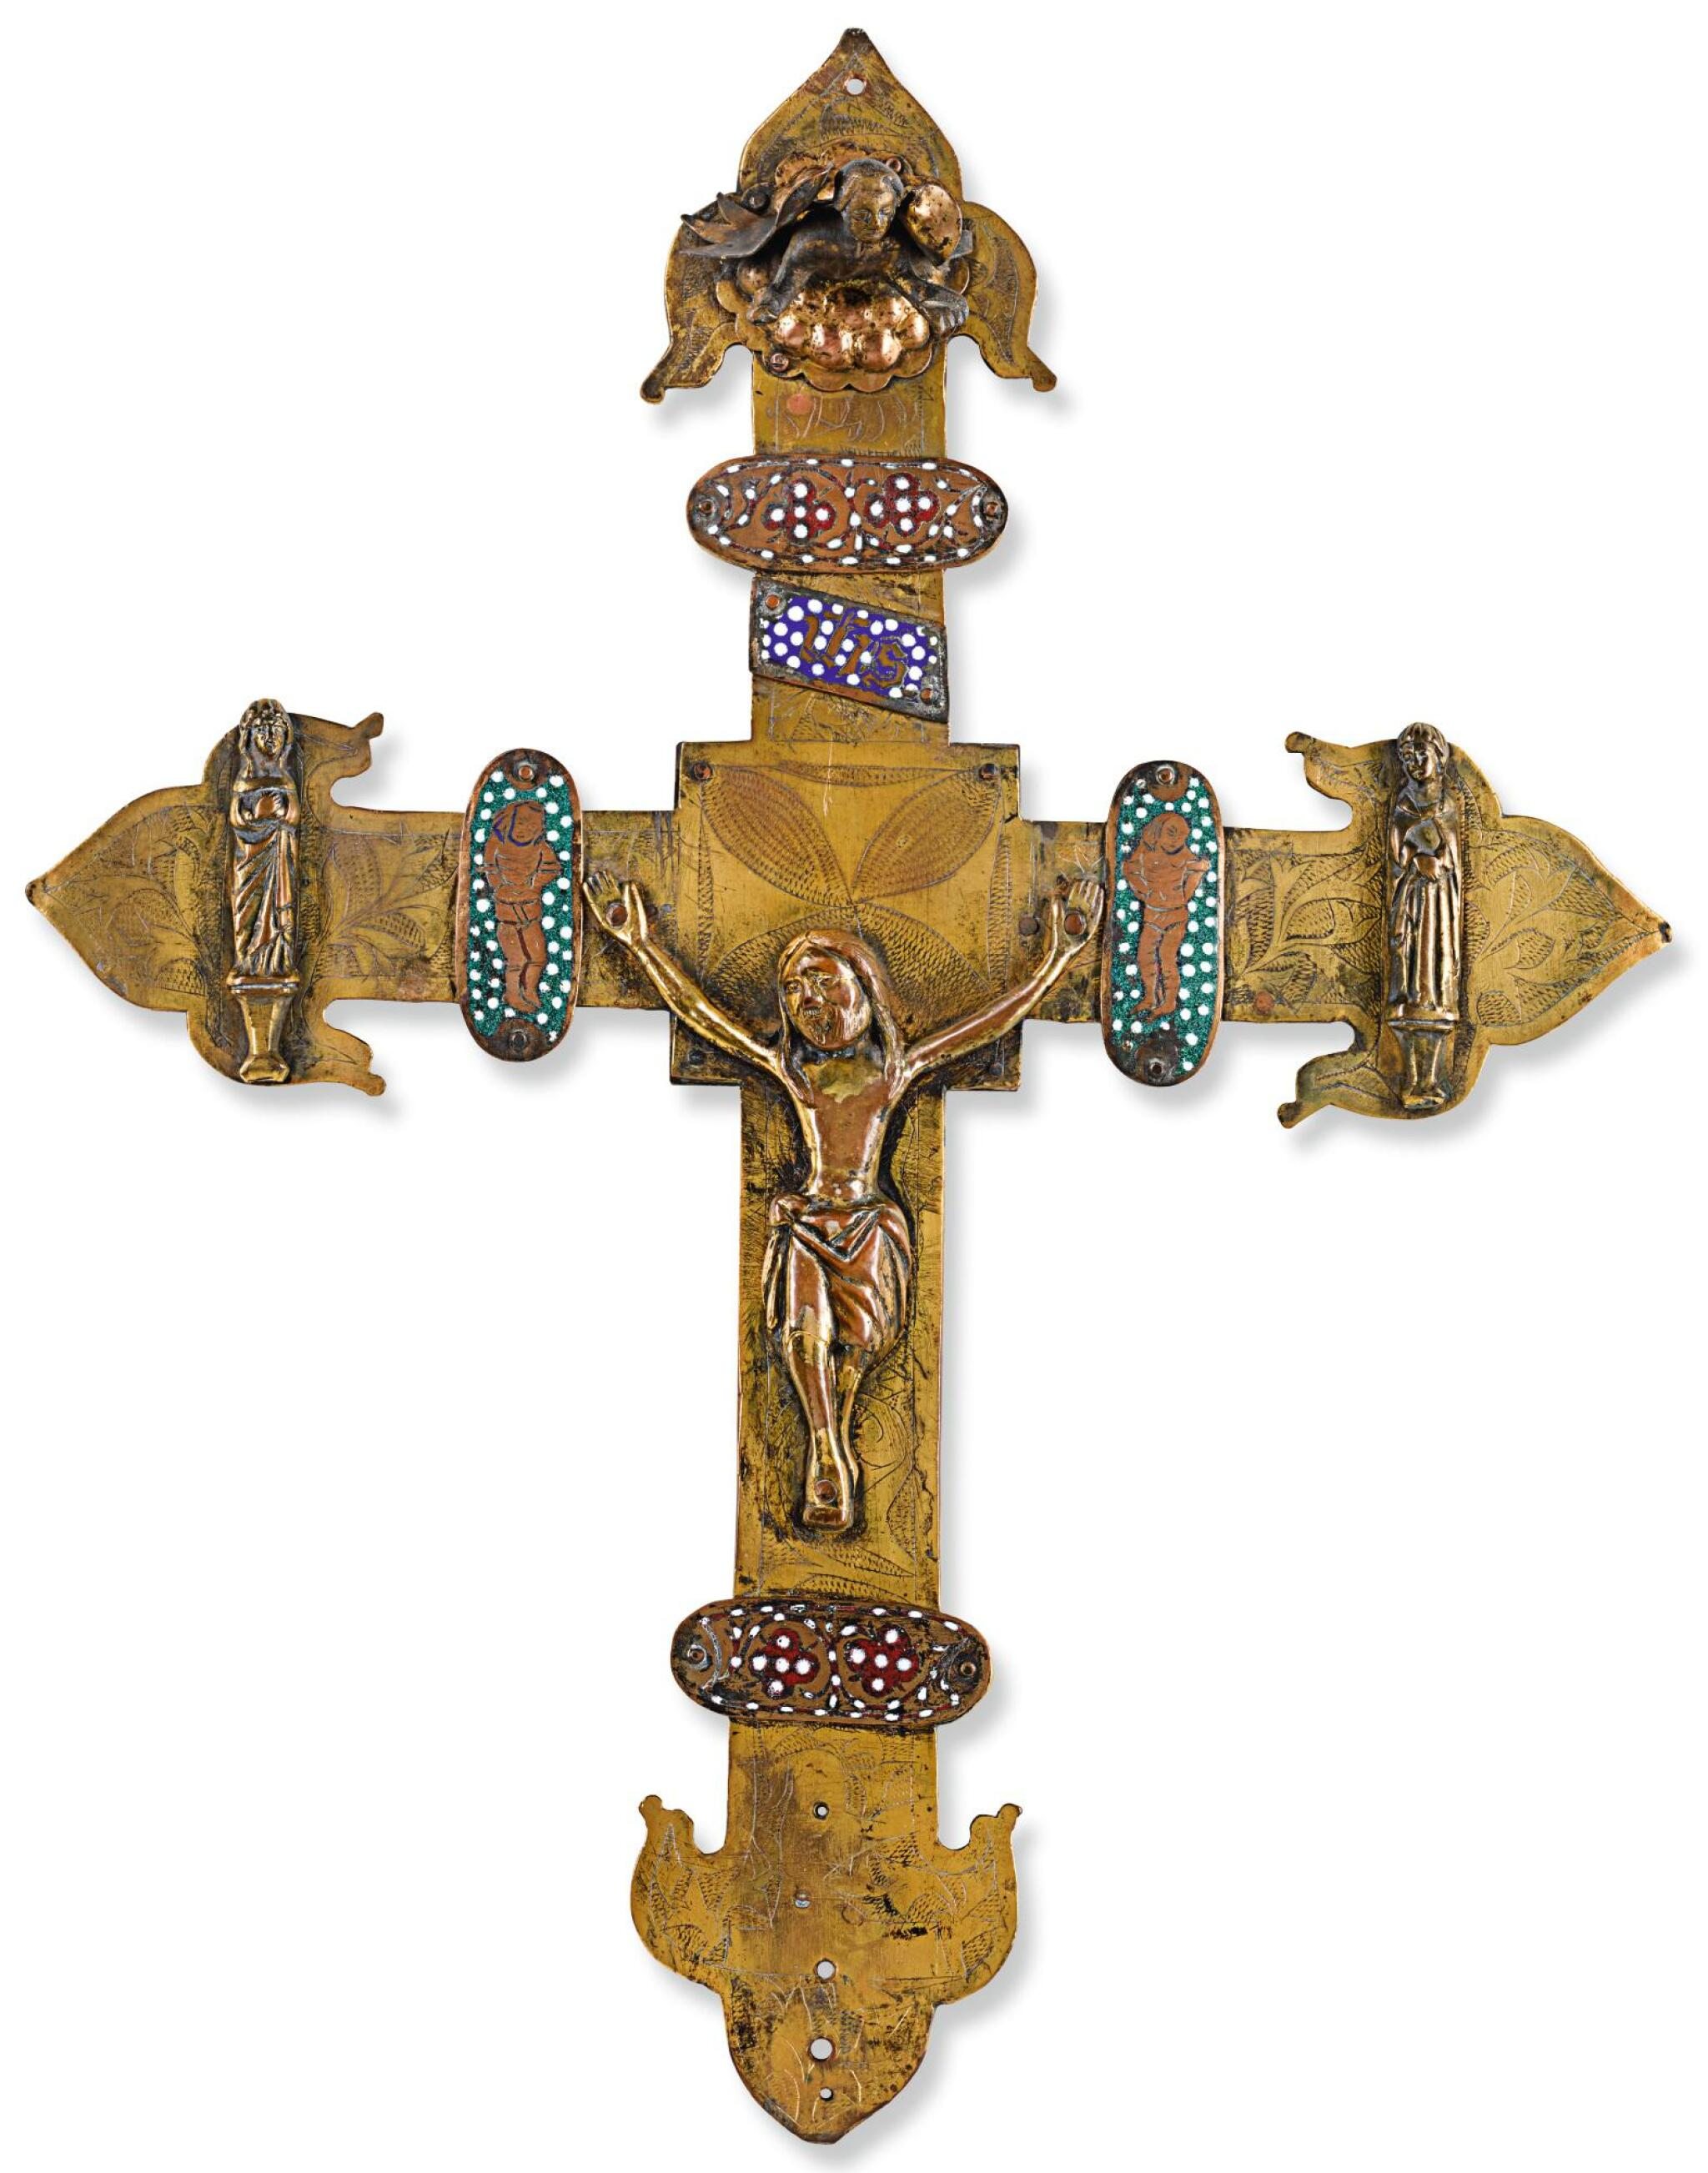 SPANISH, PROBABLY ARAGON, LATE 14TH CENTURY AND LATER | PROCESSIONAL CROSS